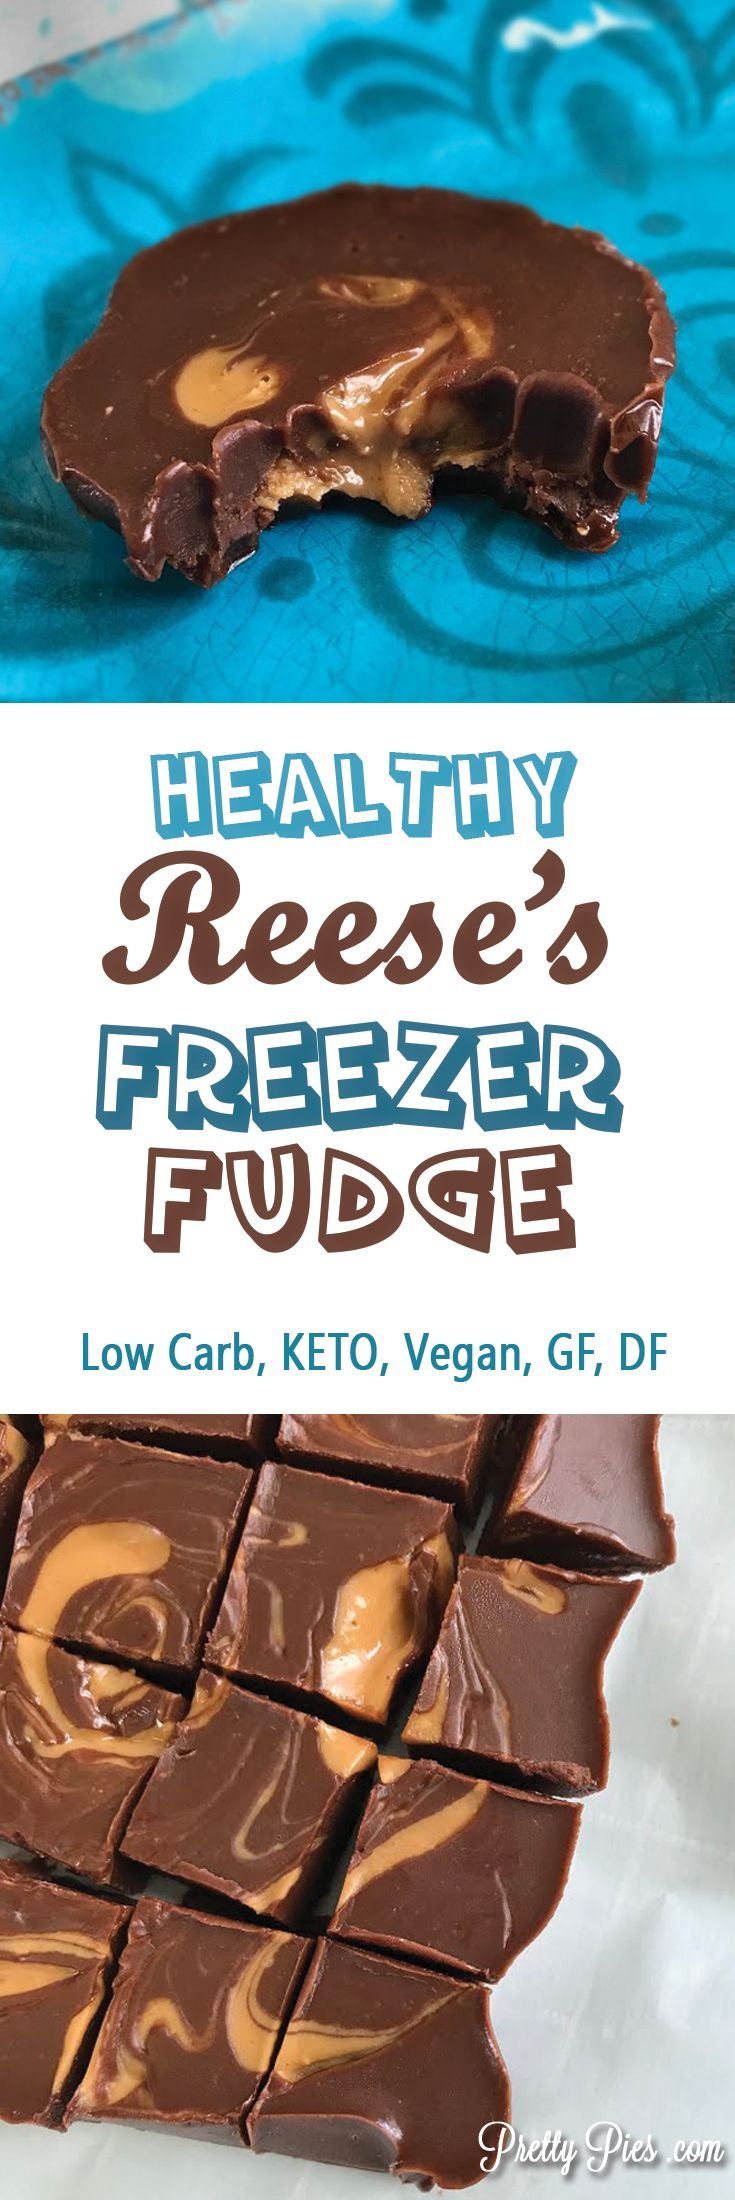 This melt-in-your-mouth, LOW CARB Freezer Fudge has all the deliciousness of a Reese's peanut butter cup, but none of the sugar or junk. Just 6 real-food ingredients that come together in a snap.#lowcarb #keto #vegan Free from gluten, grains, dairy, sugar, soy and eggs. - PrettyPies.com